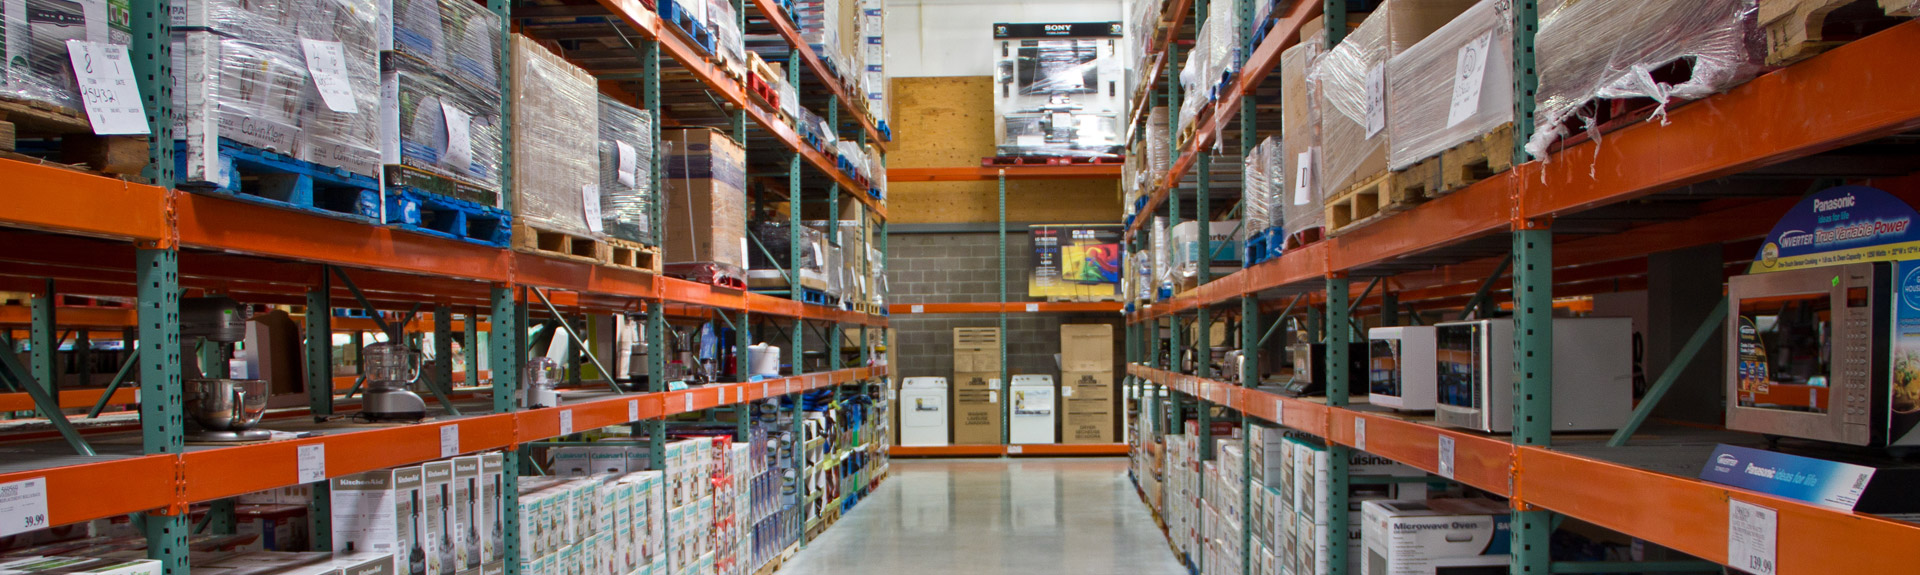 Custom Supply Chain Solutions Tailored To Meet Your Specific Needs